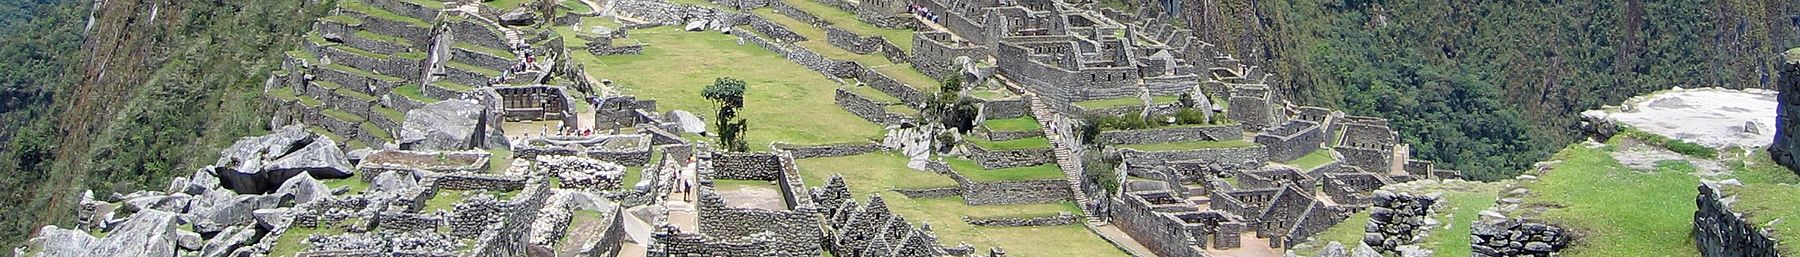 WV banner Archaeological sites Machu Picchu.jpg